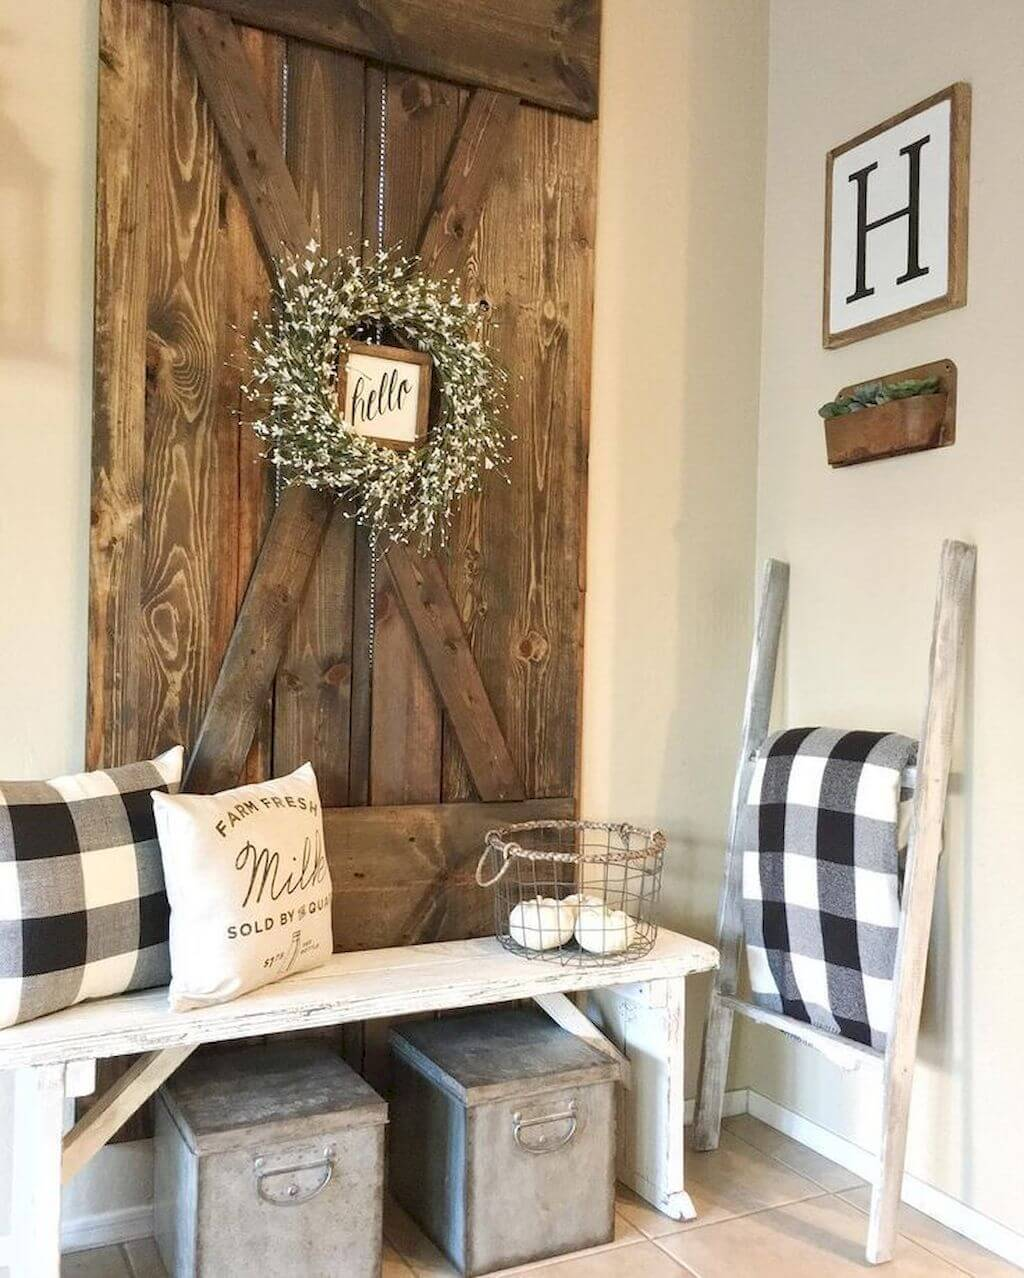 Rustic Hello in Barn Door Style